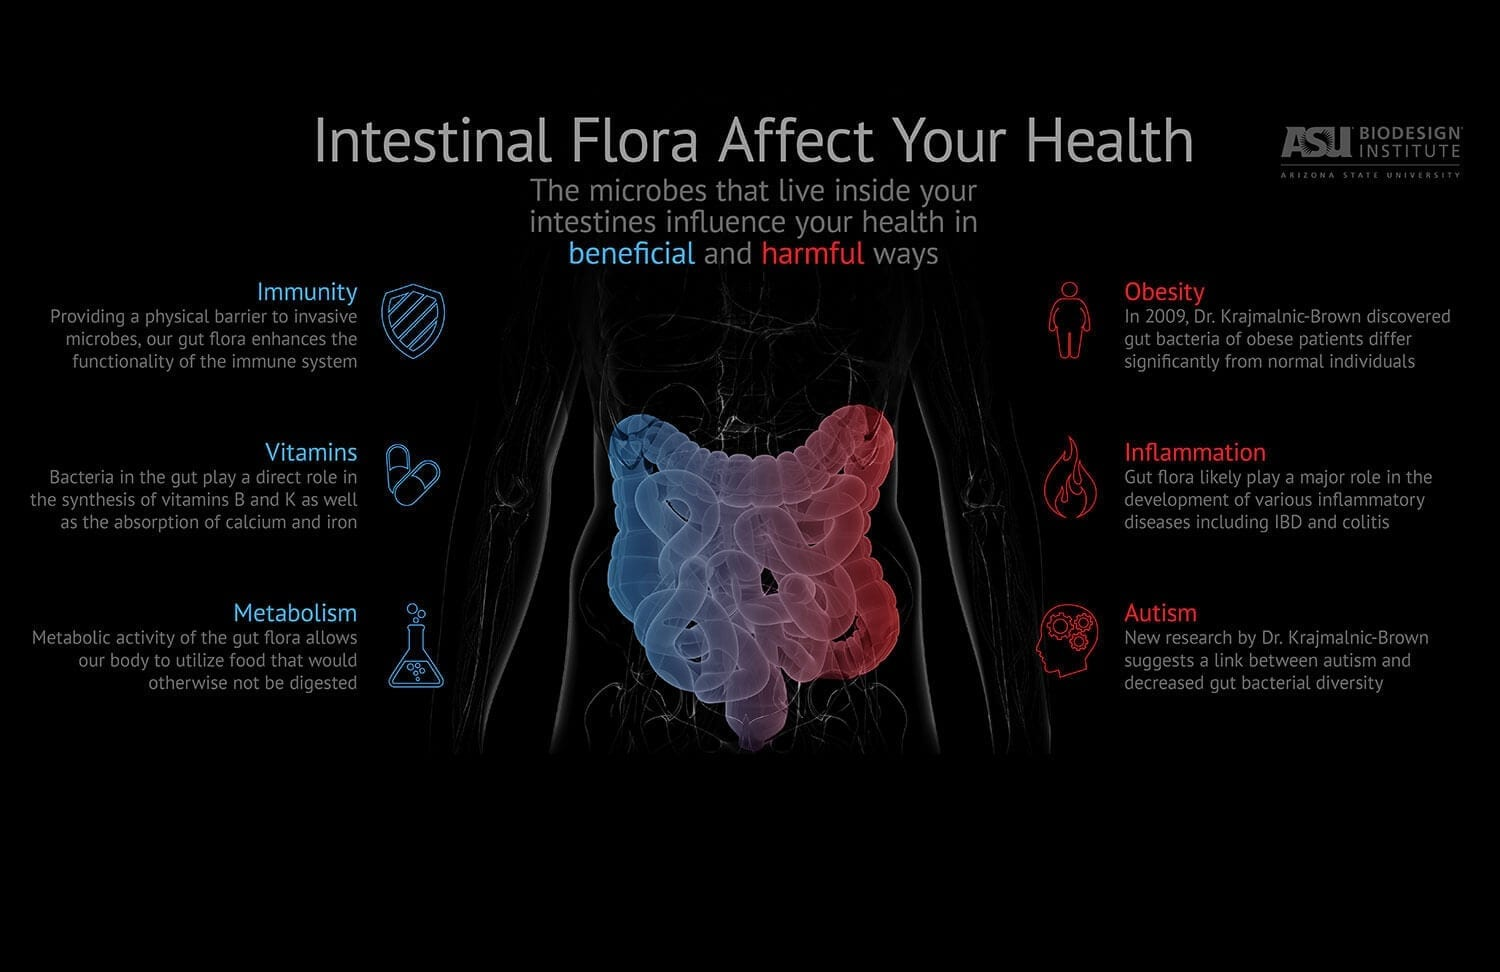 Top 7 foods that look after your gut flora